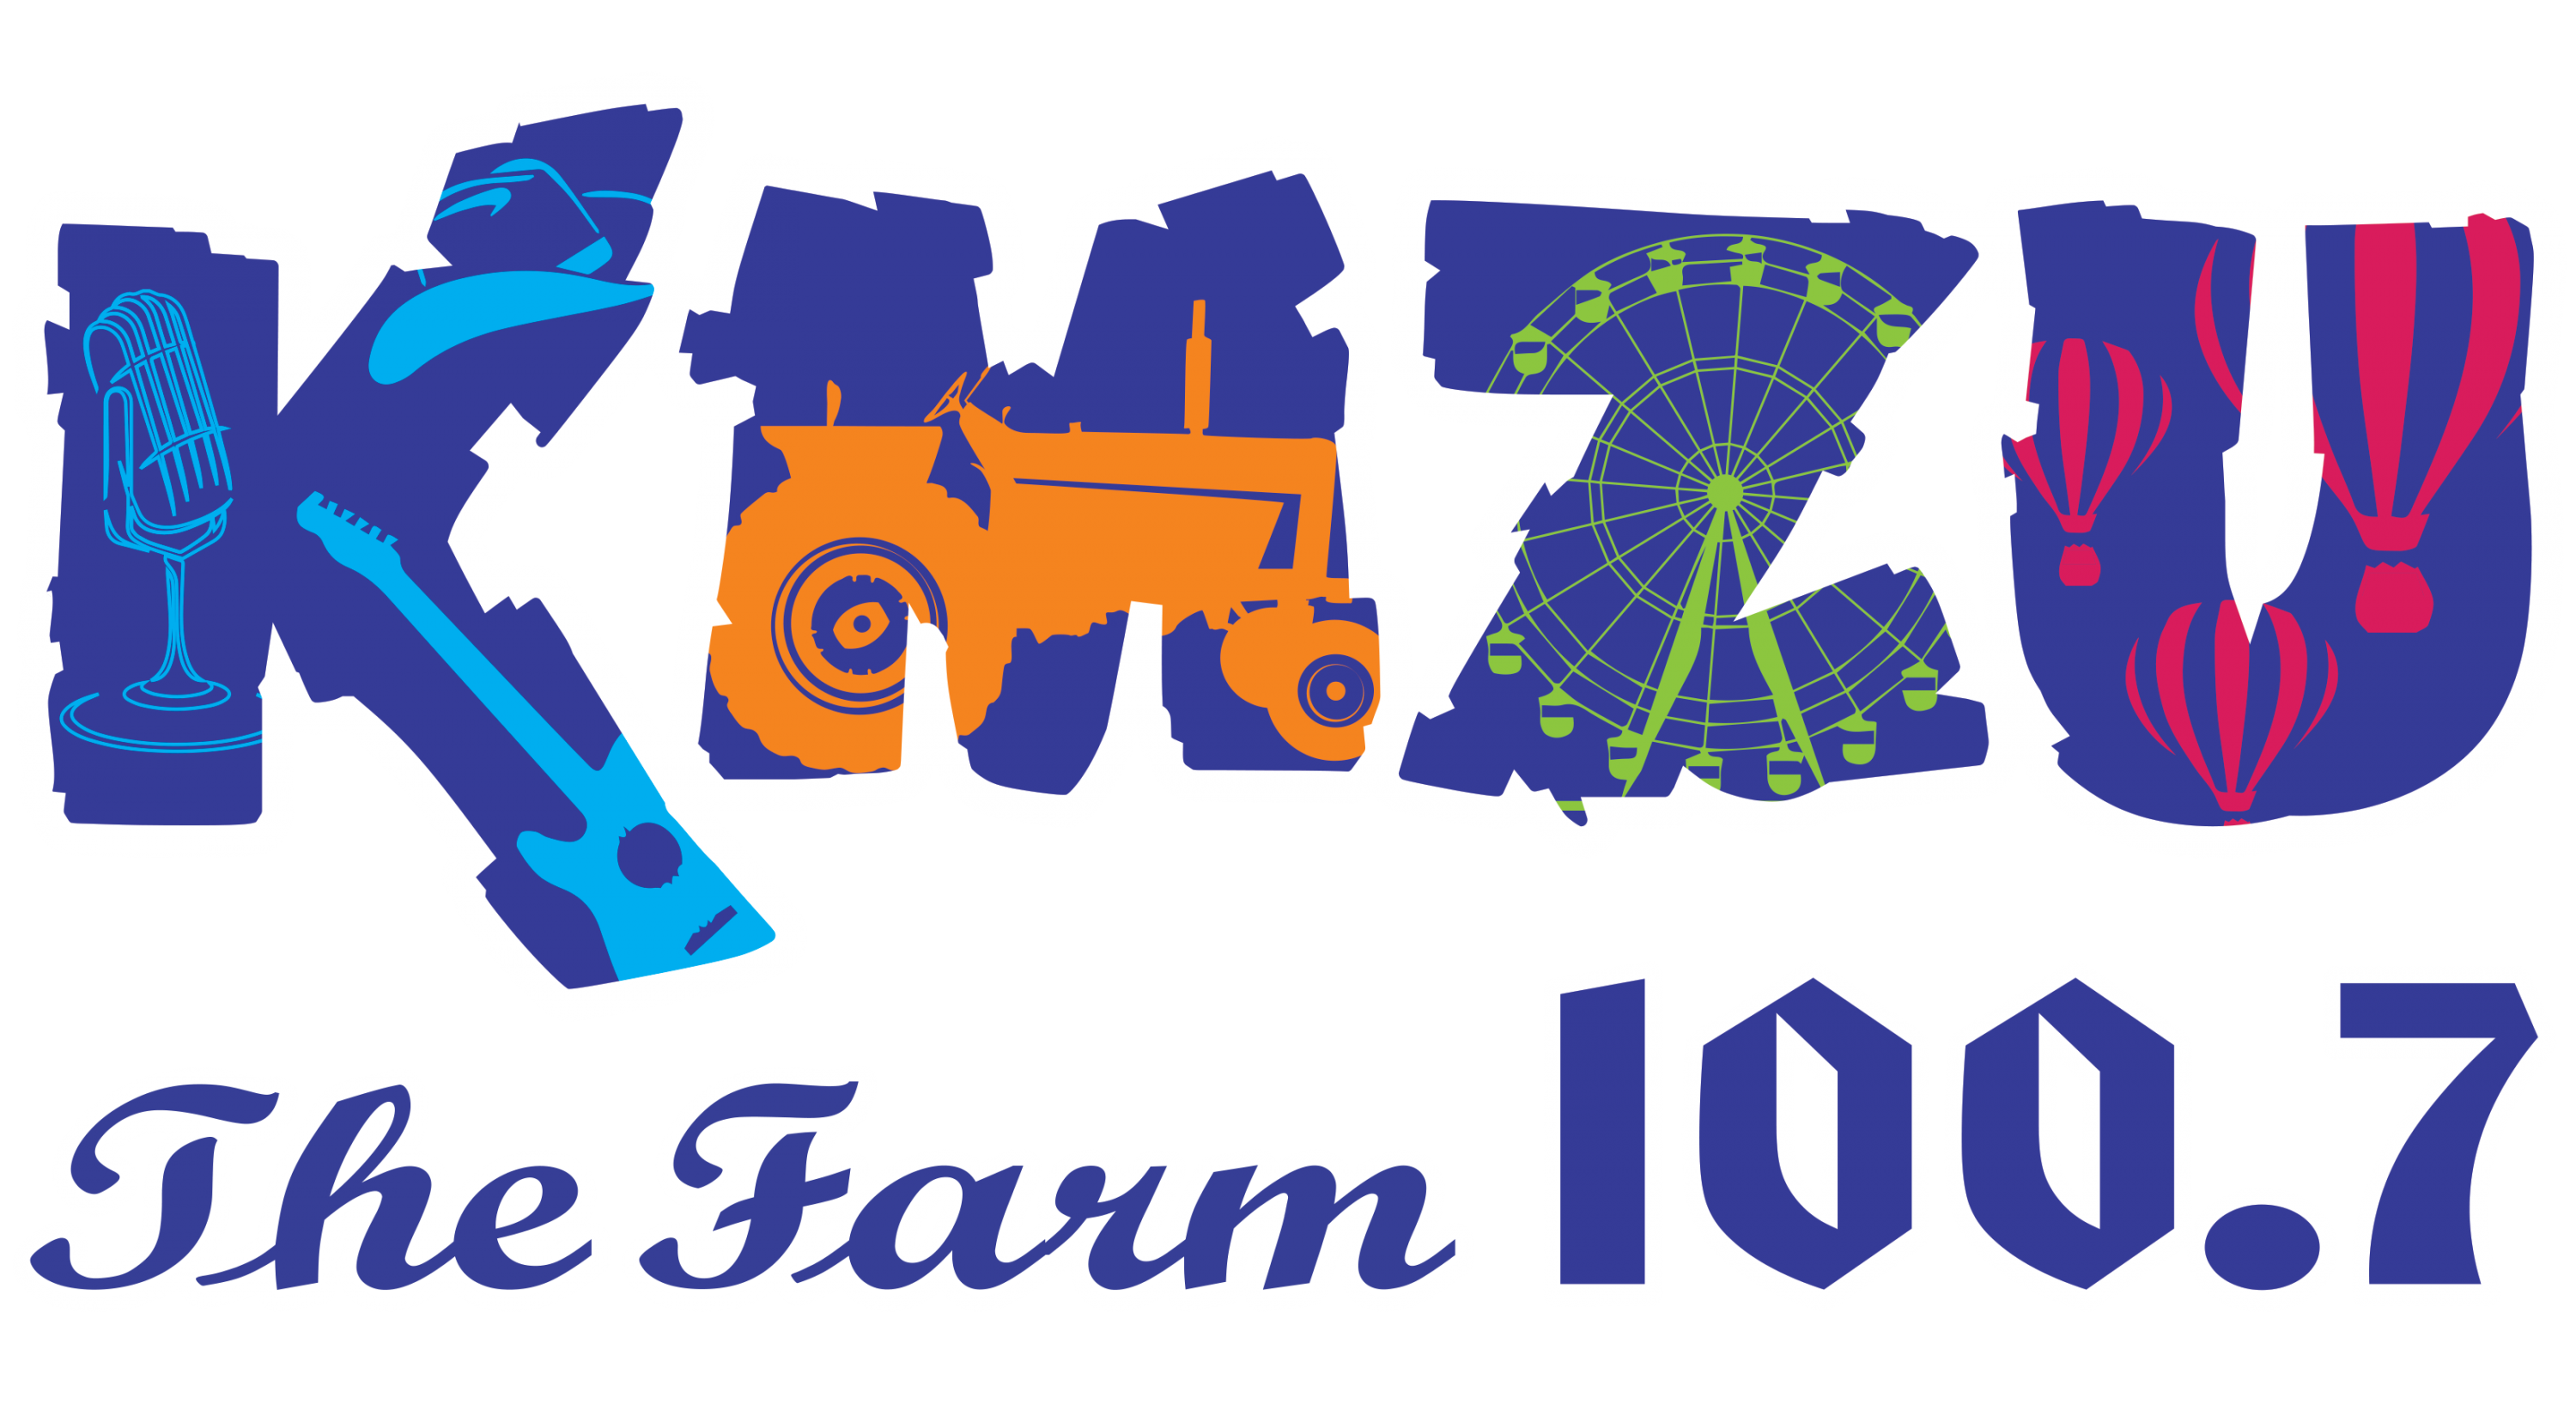 Crank up you chances to win – XTREME Summer Giveaway at Lathrop Antique Steam & Gas Show